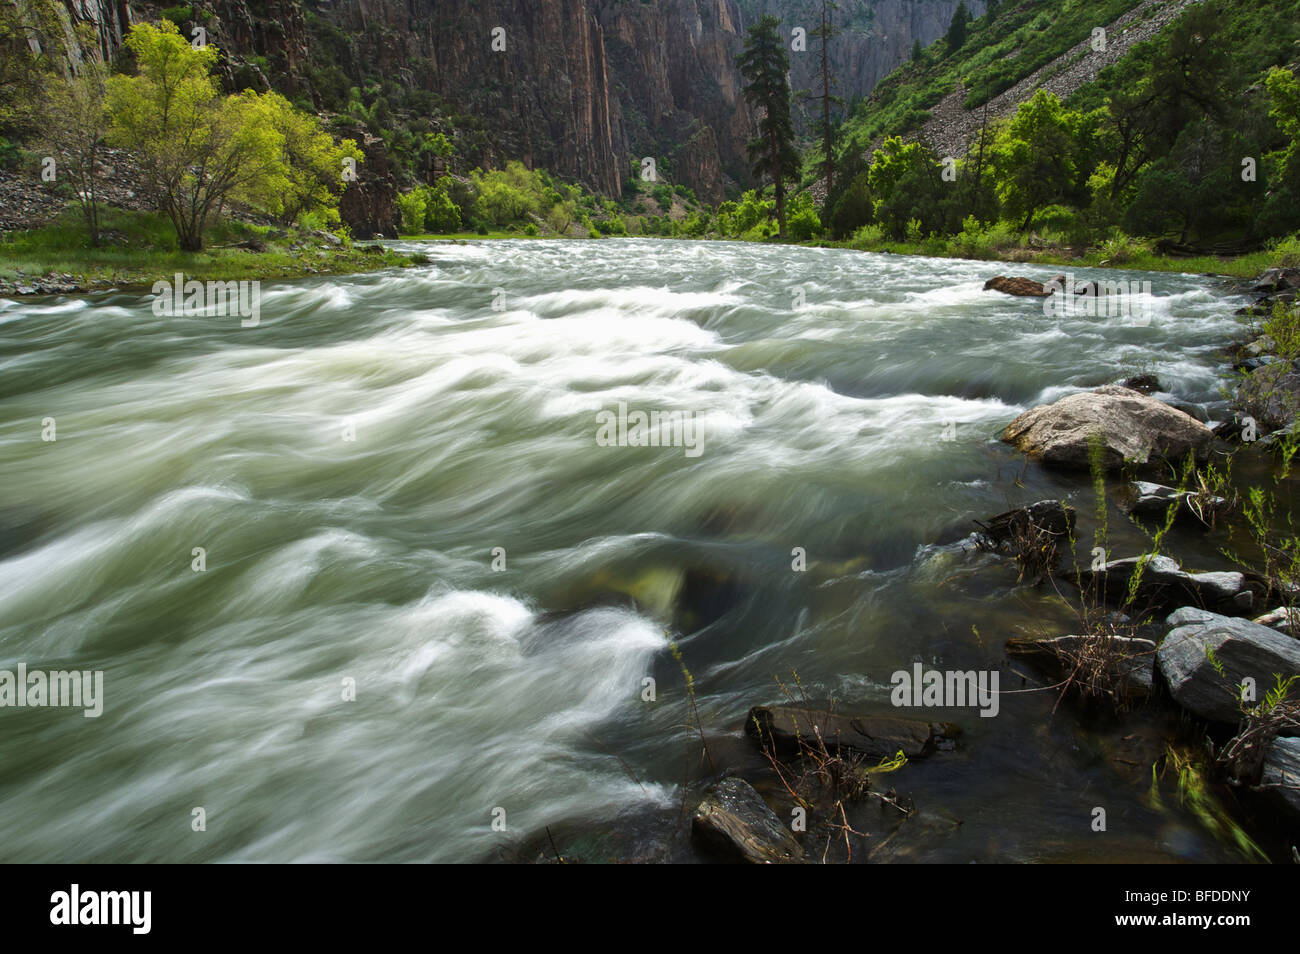 The Gunnison River in the Black Canyon Gorge, Colorado. (motion blur) - Stock Image